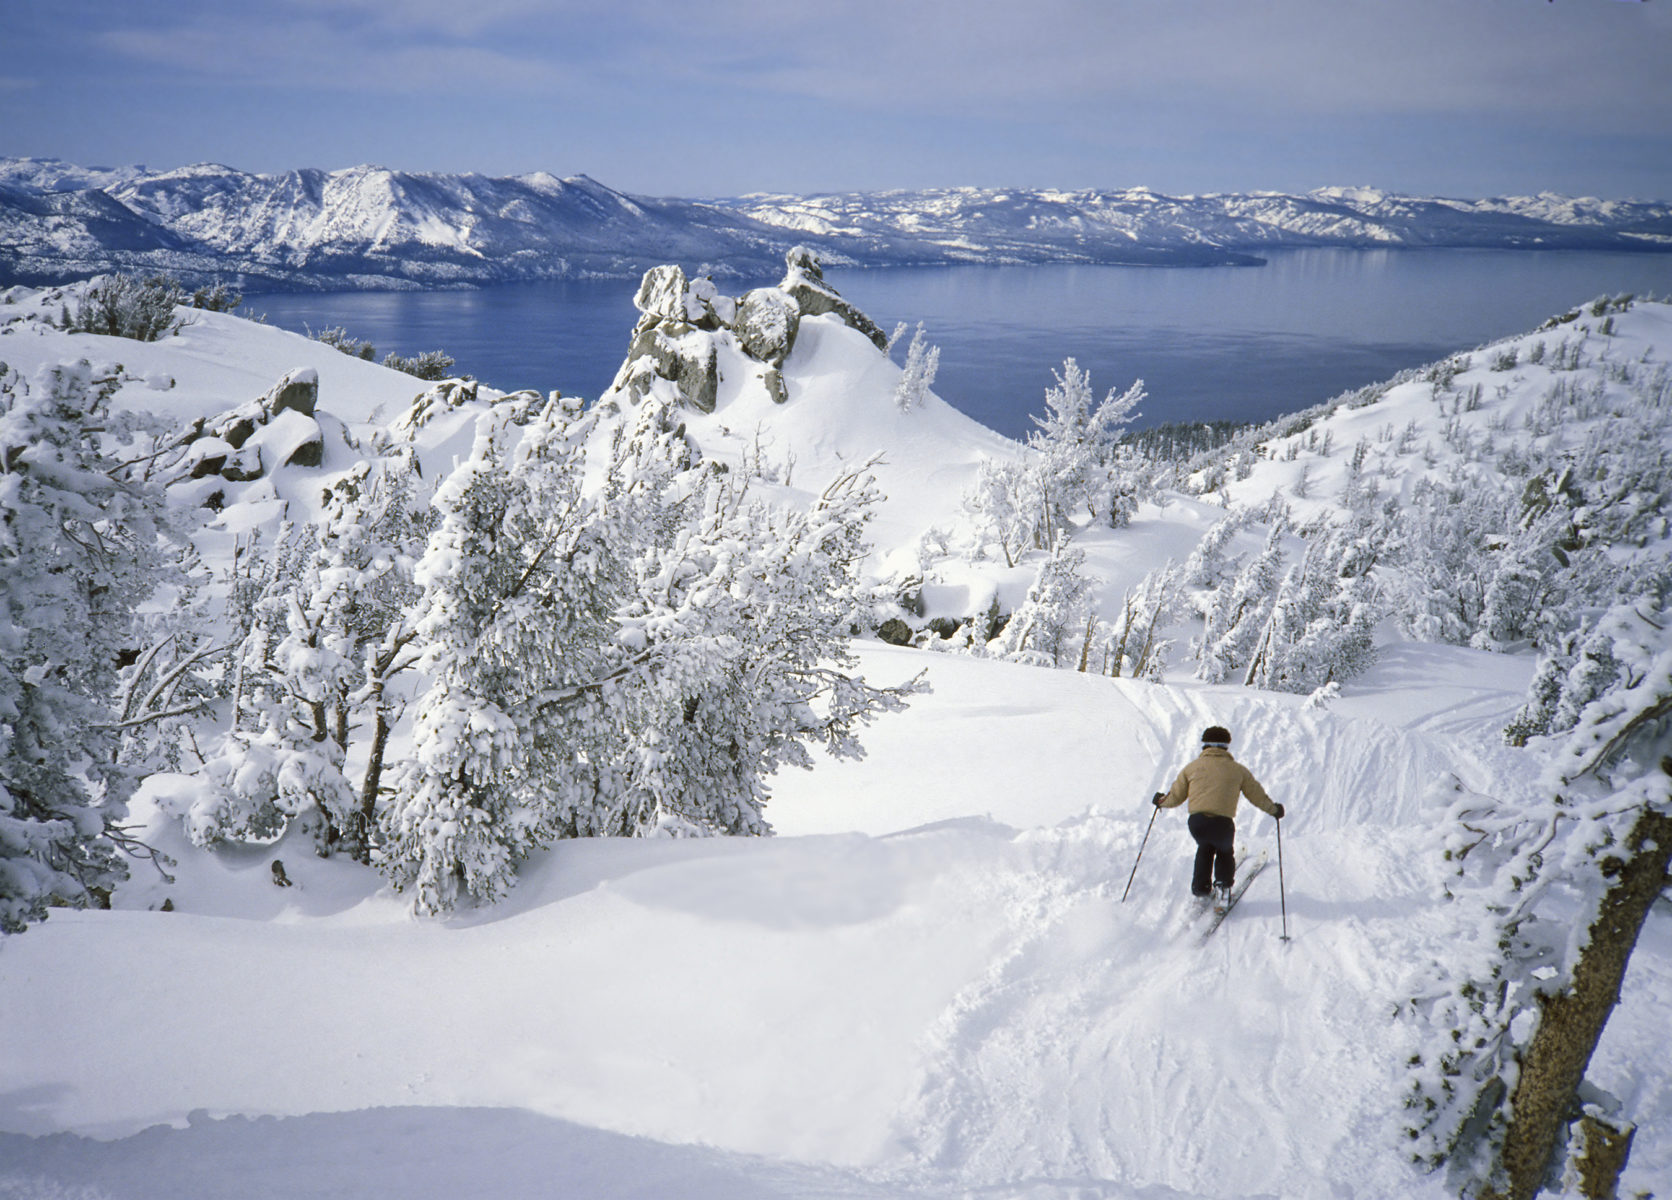 5 Ways to Spend Winter Vacation in Lake Tahoe With Family